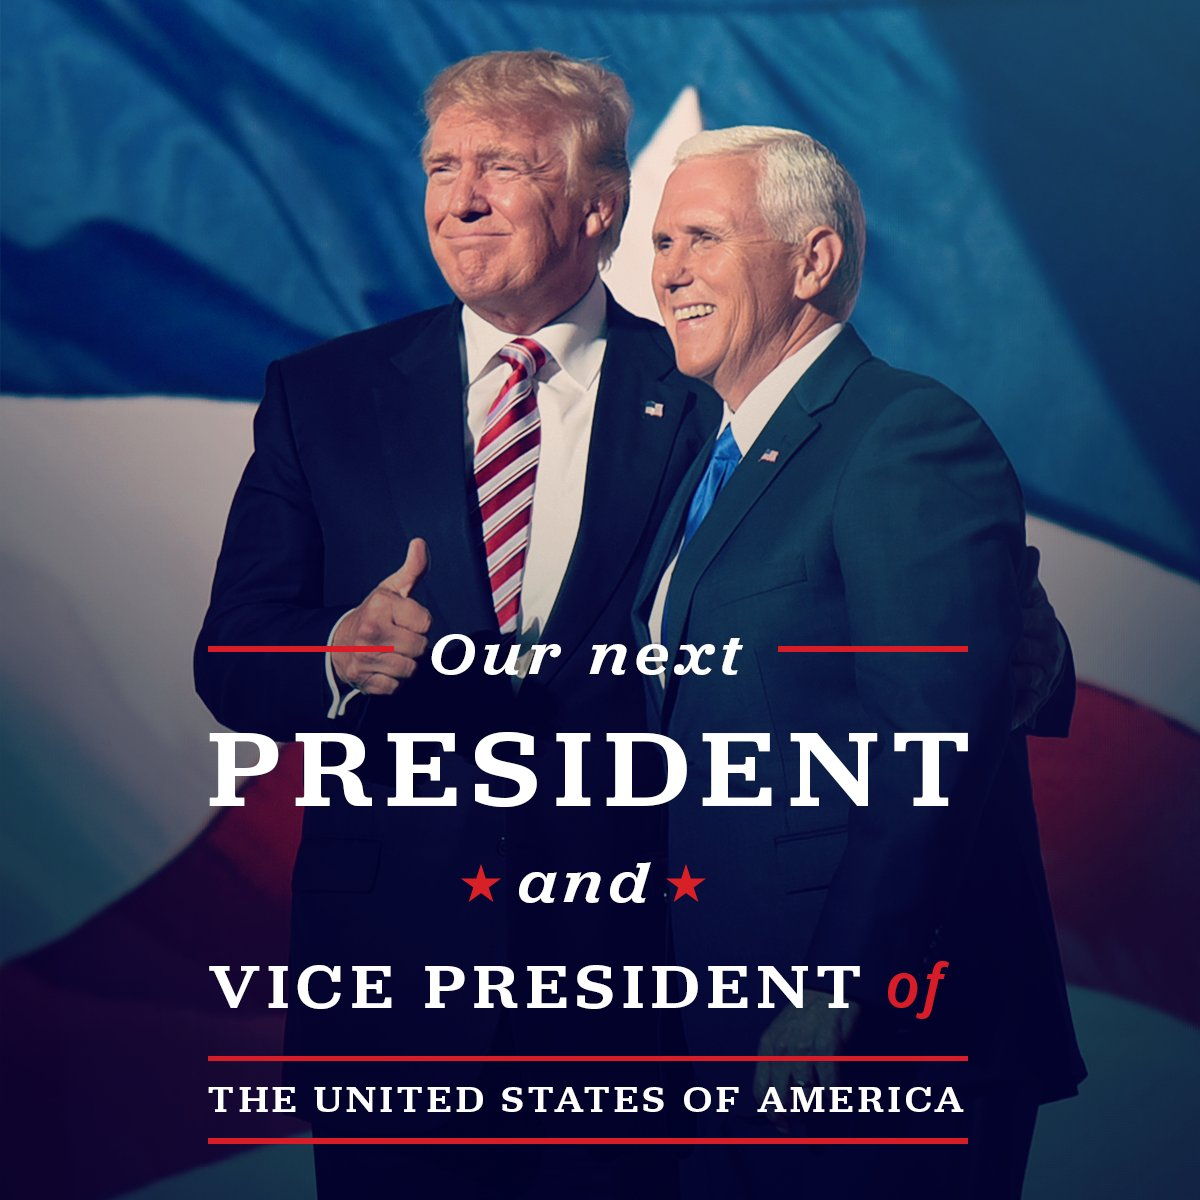 Congratulations to President-elect @realDonaldTrump and VP-elect @mike_pence on their historic win! We did it! https://t.co/7Rr1K7SeTA